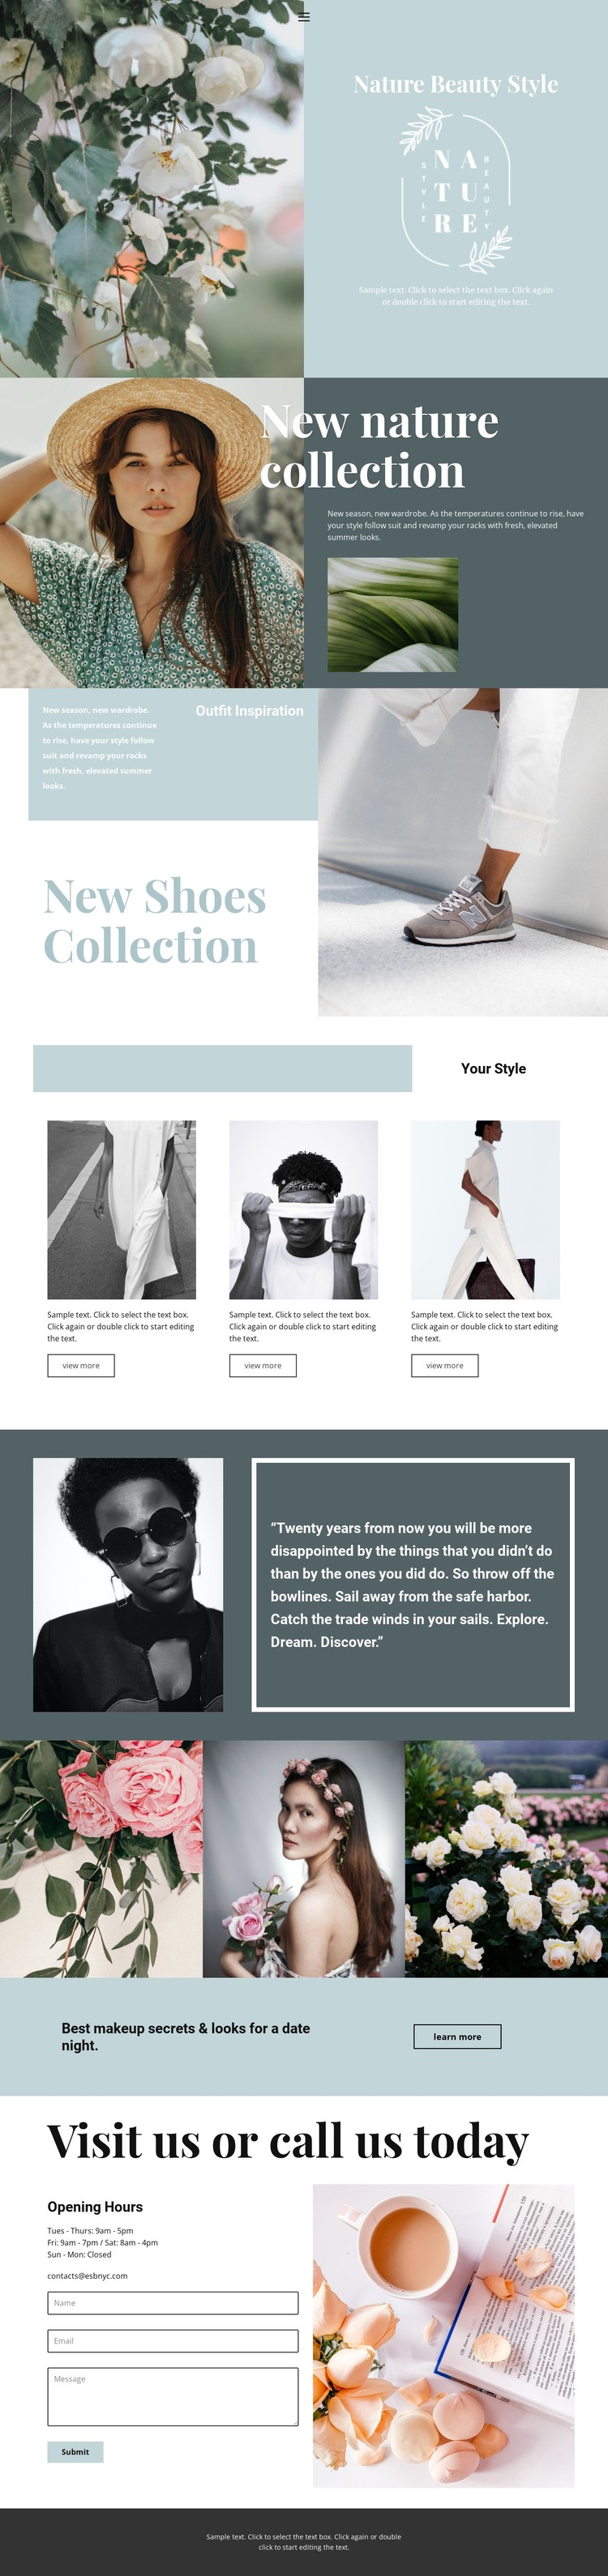 Nature collection CSS Template